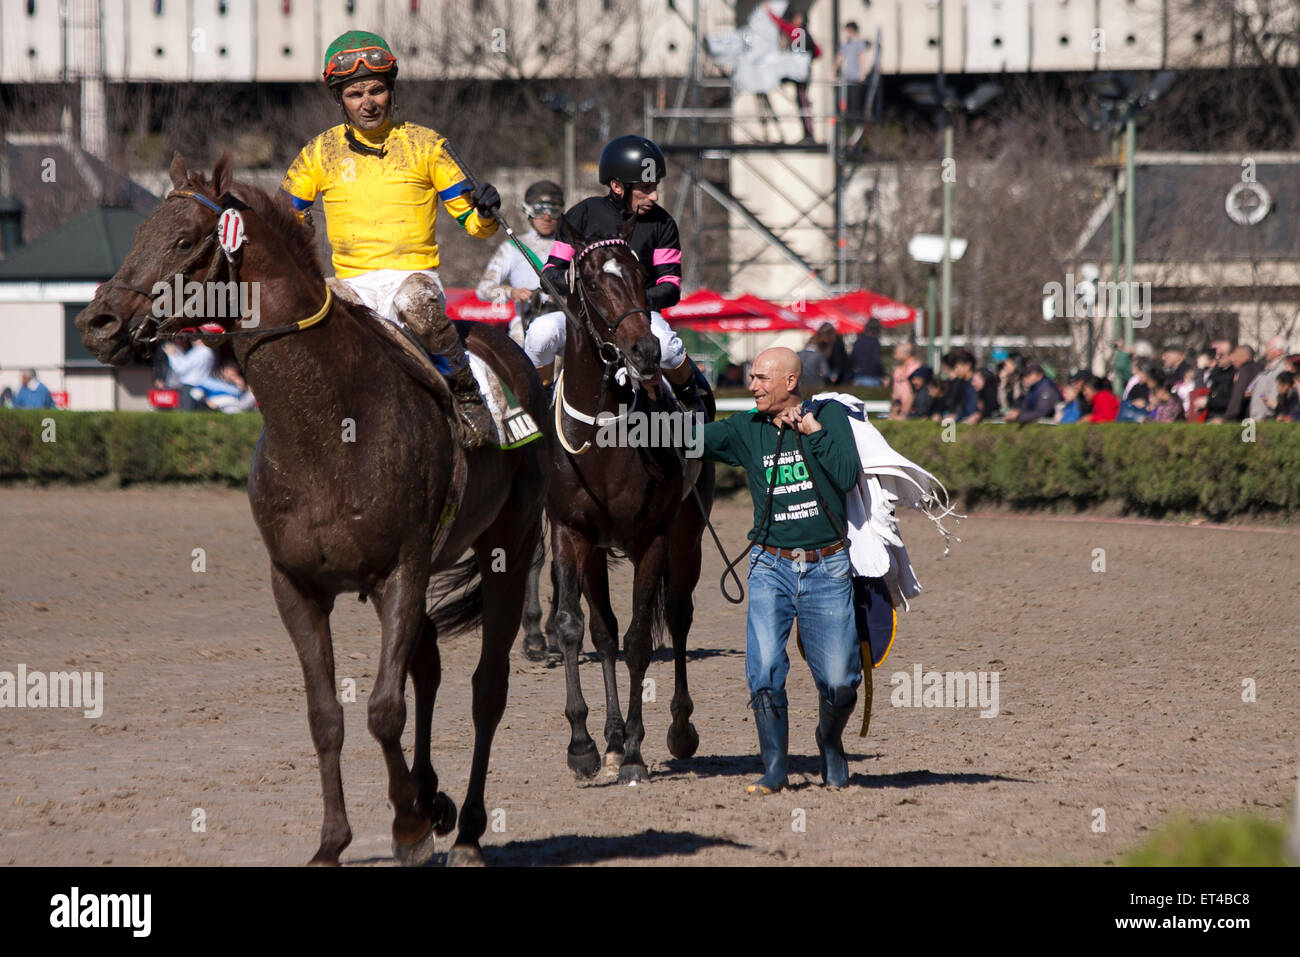 Muddy horseman. Sad look.  Grimace. Loser, dirty, disappointment, colorful, sunny day, congratulation, public, race - Stock Image